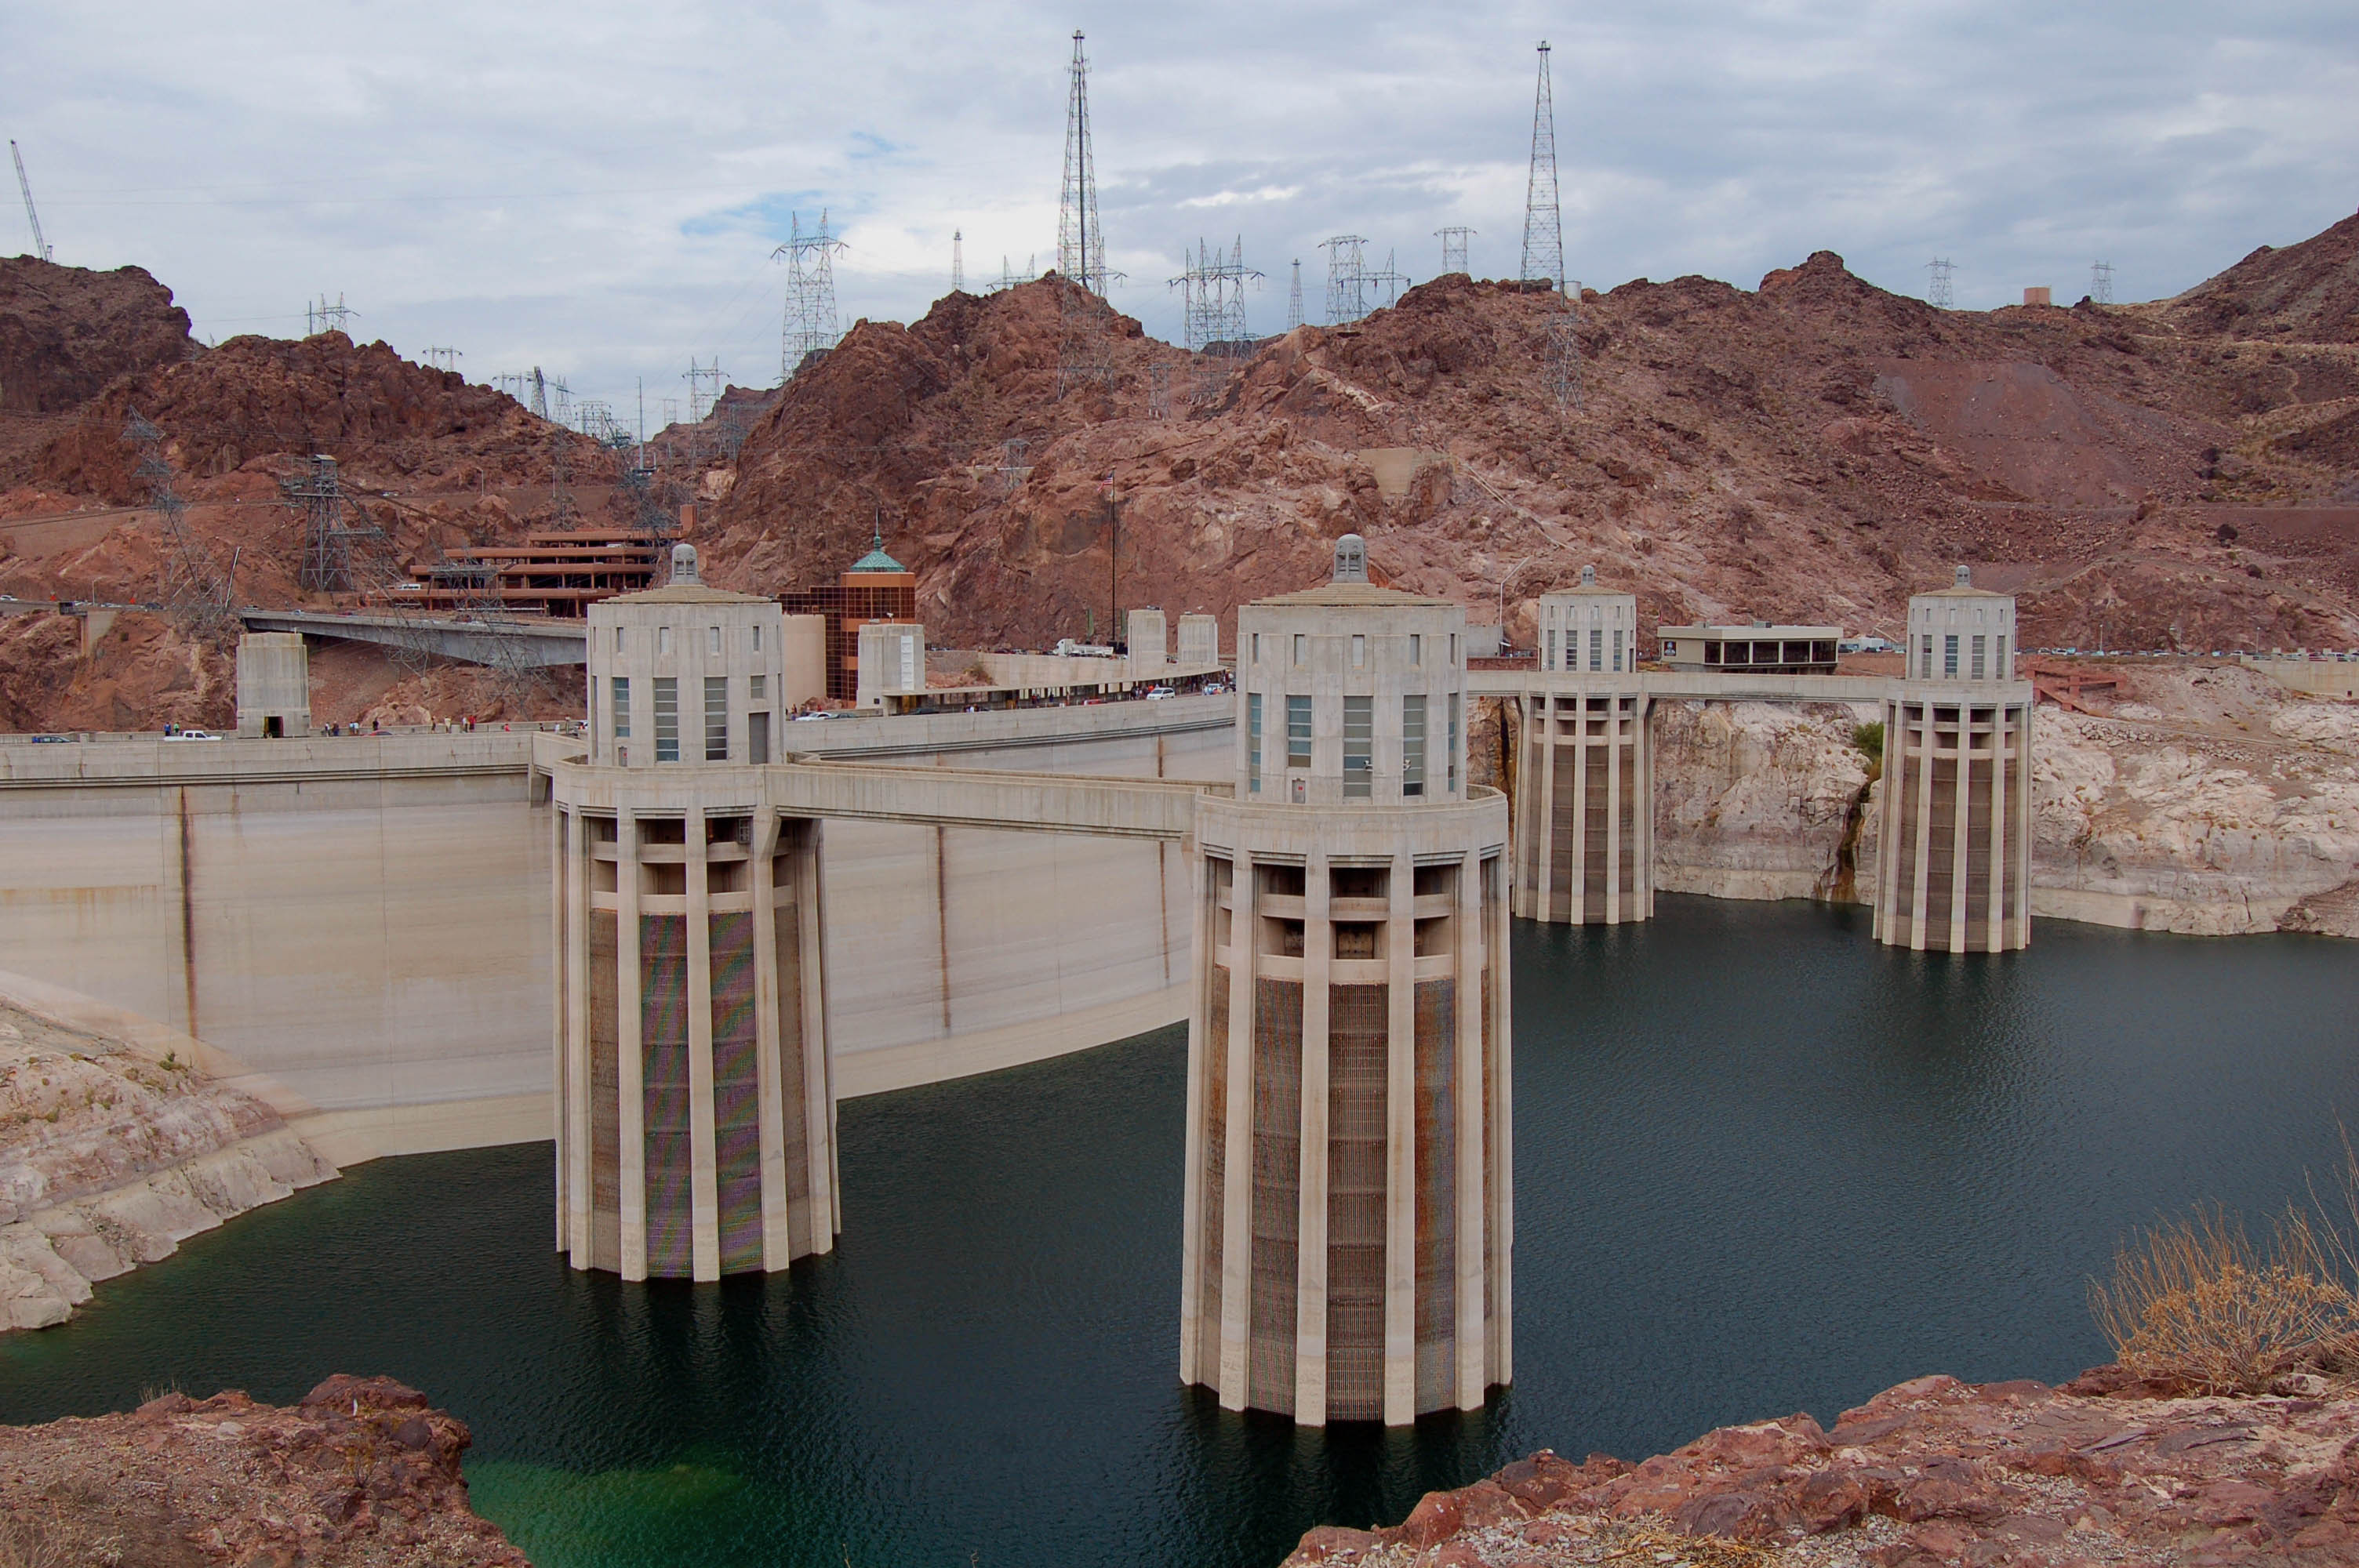 Environmental Impacts of Hydroelectric Dams - Clean Energy Ideas